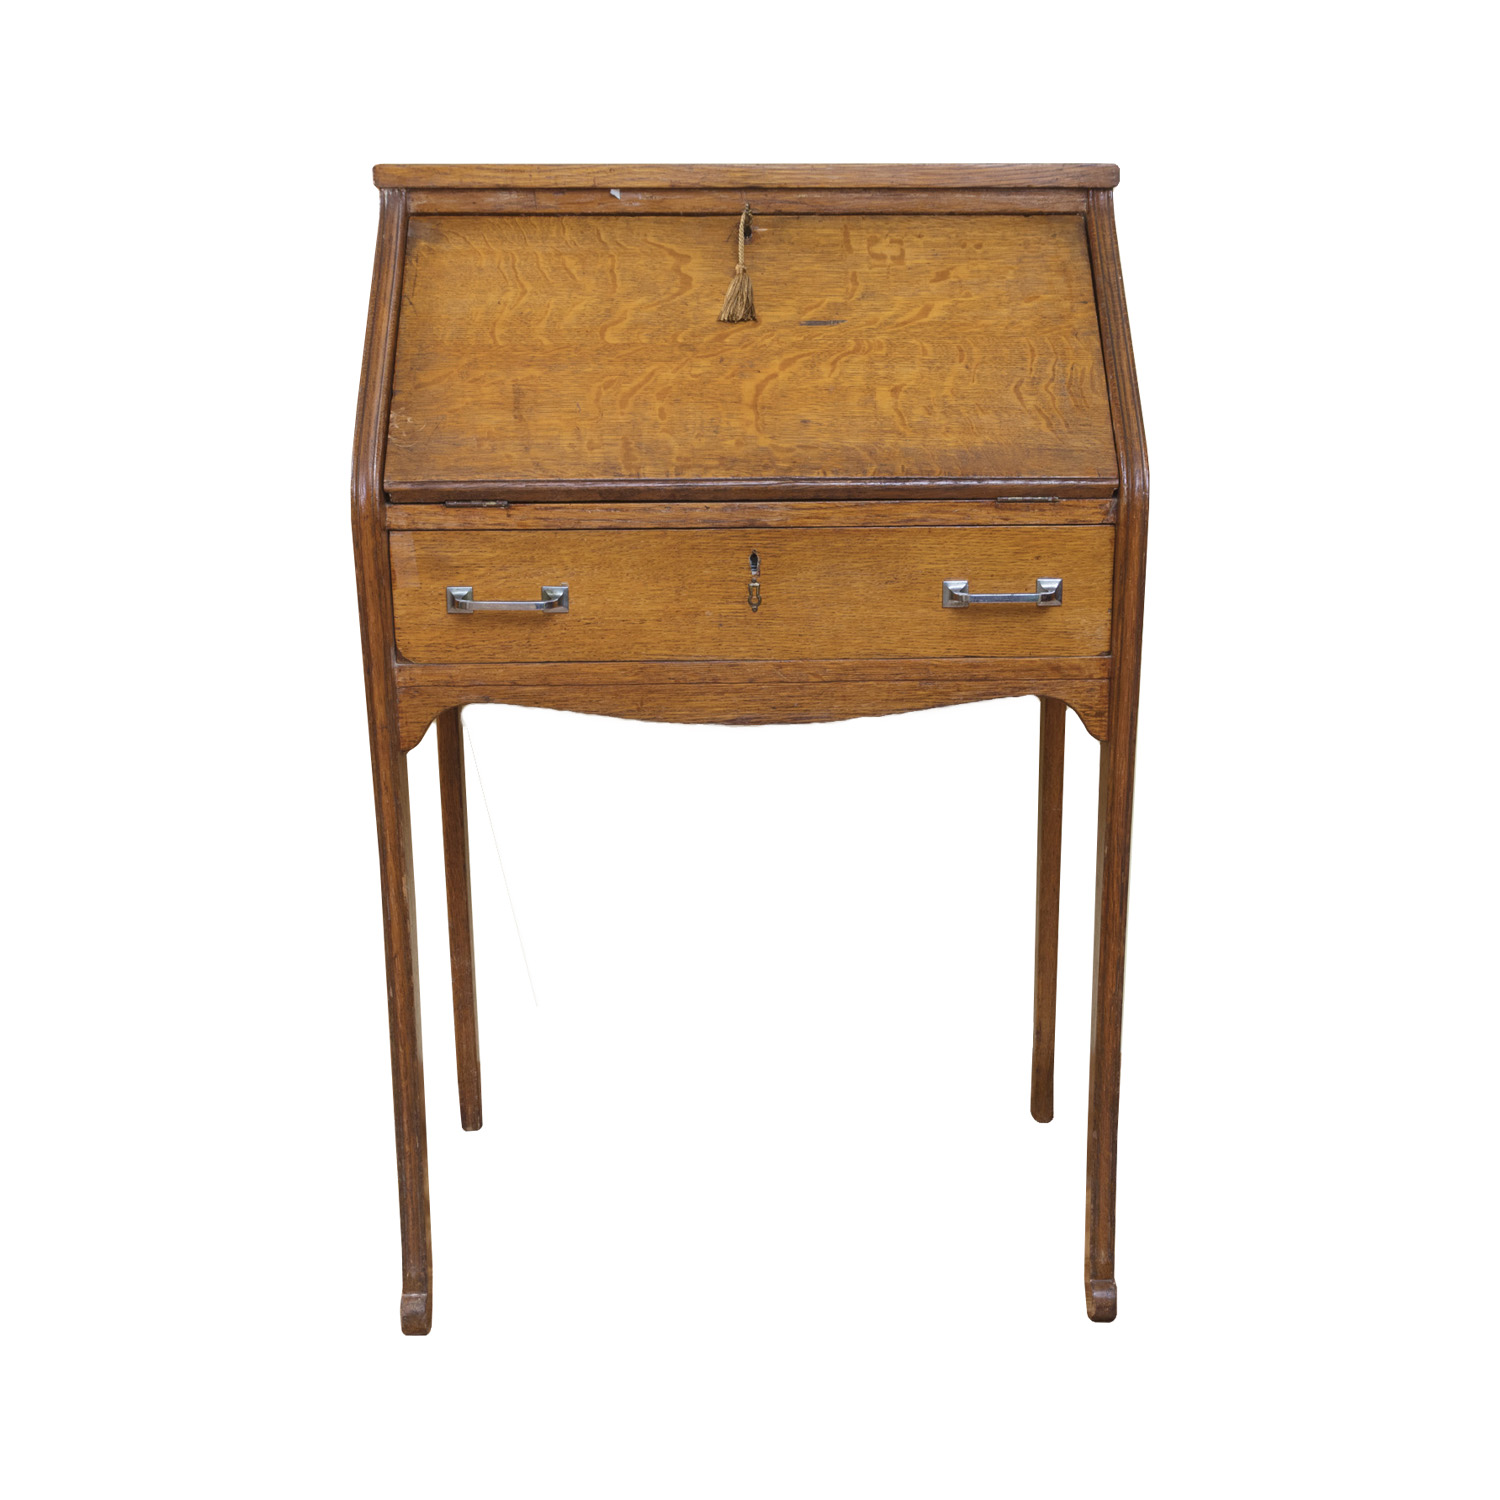 Vintage ladies writing desk